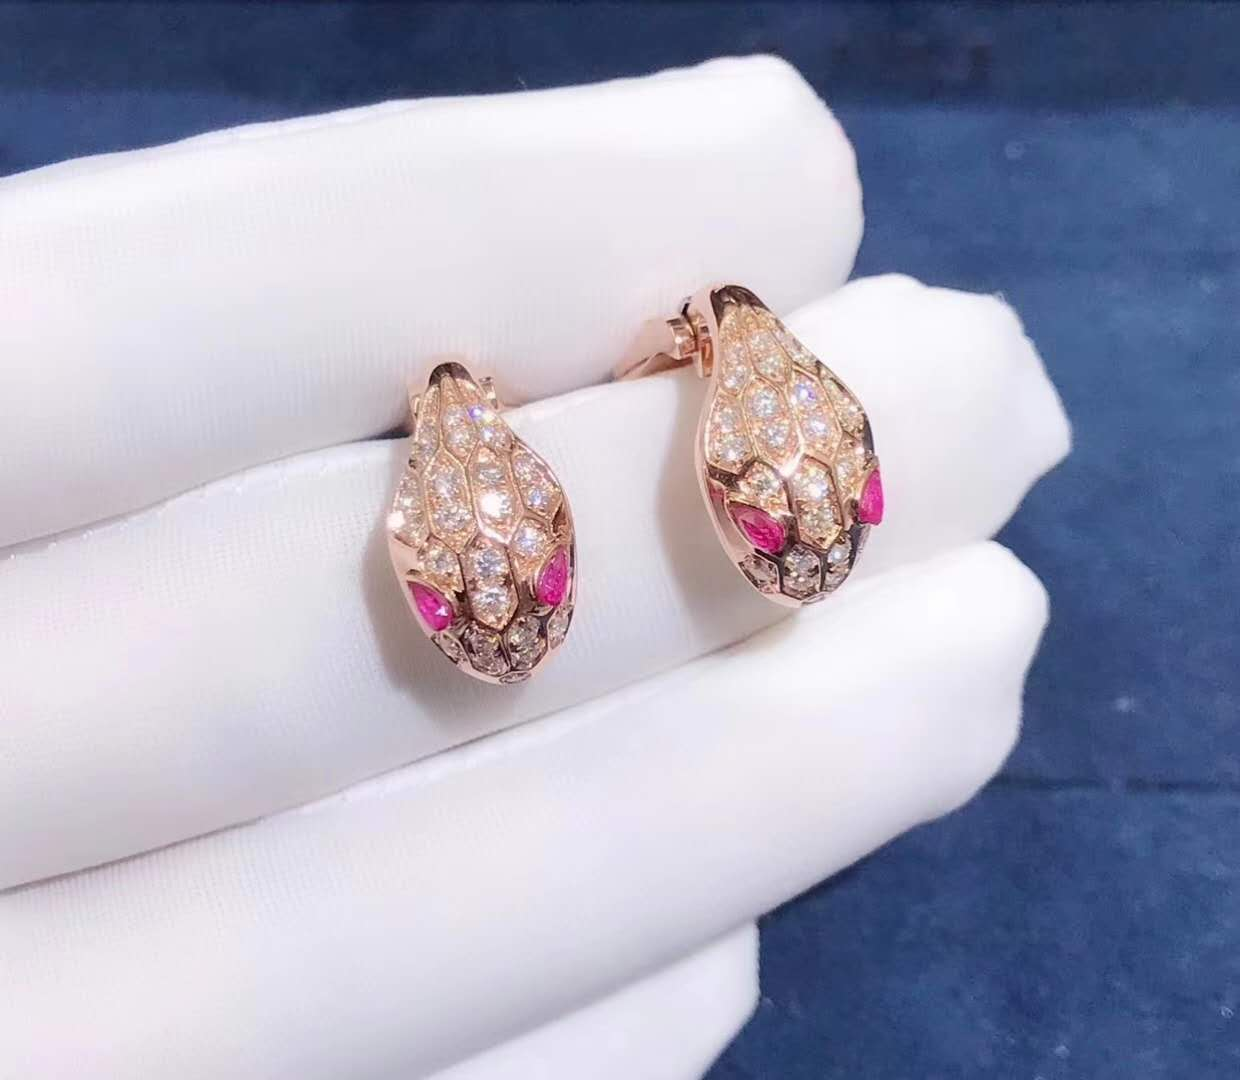 Bvlgari Serpenti Earrings in 18k rose gold set with rubellite eyes and full pave diamonds